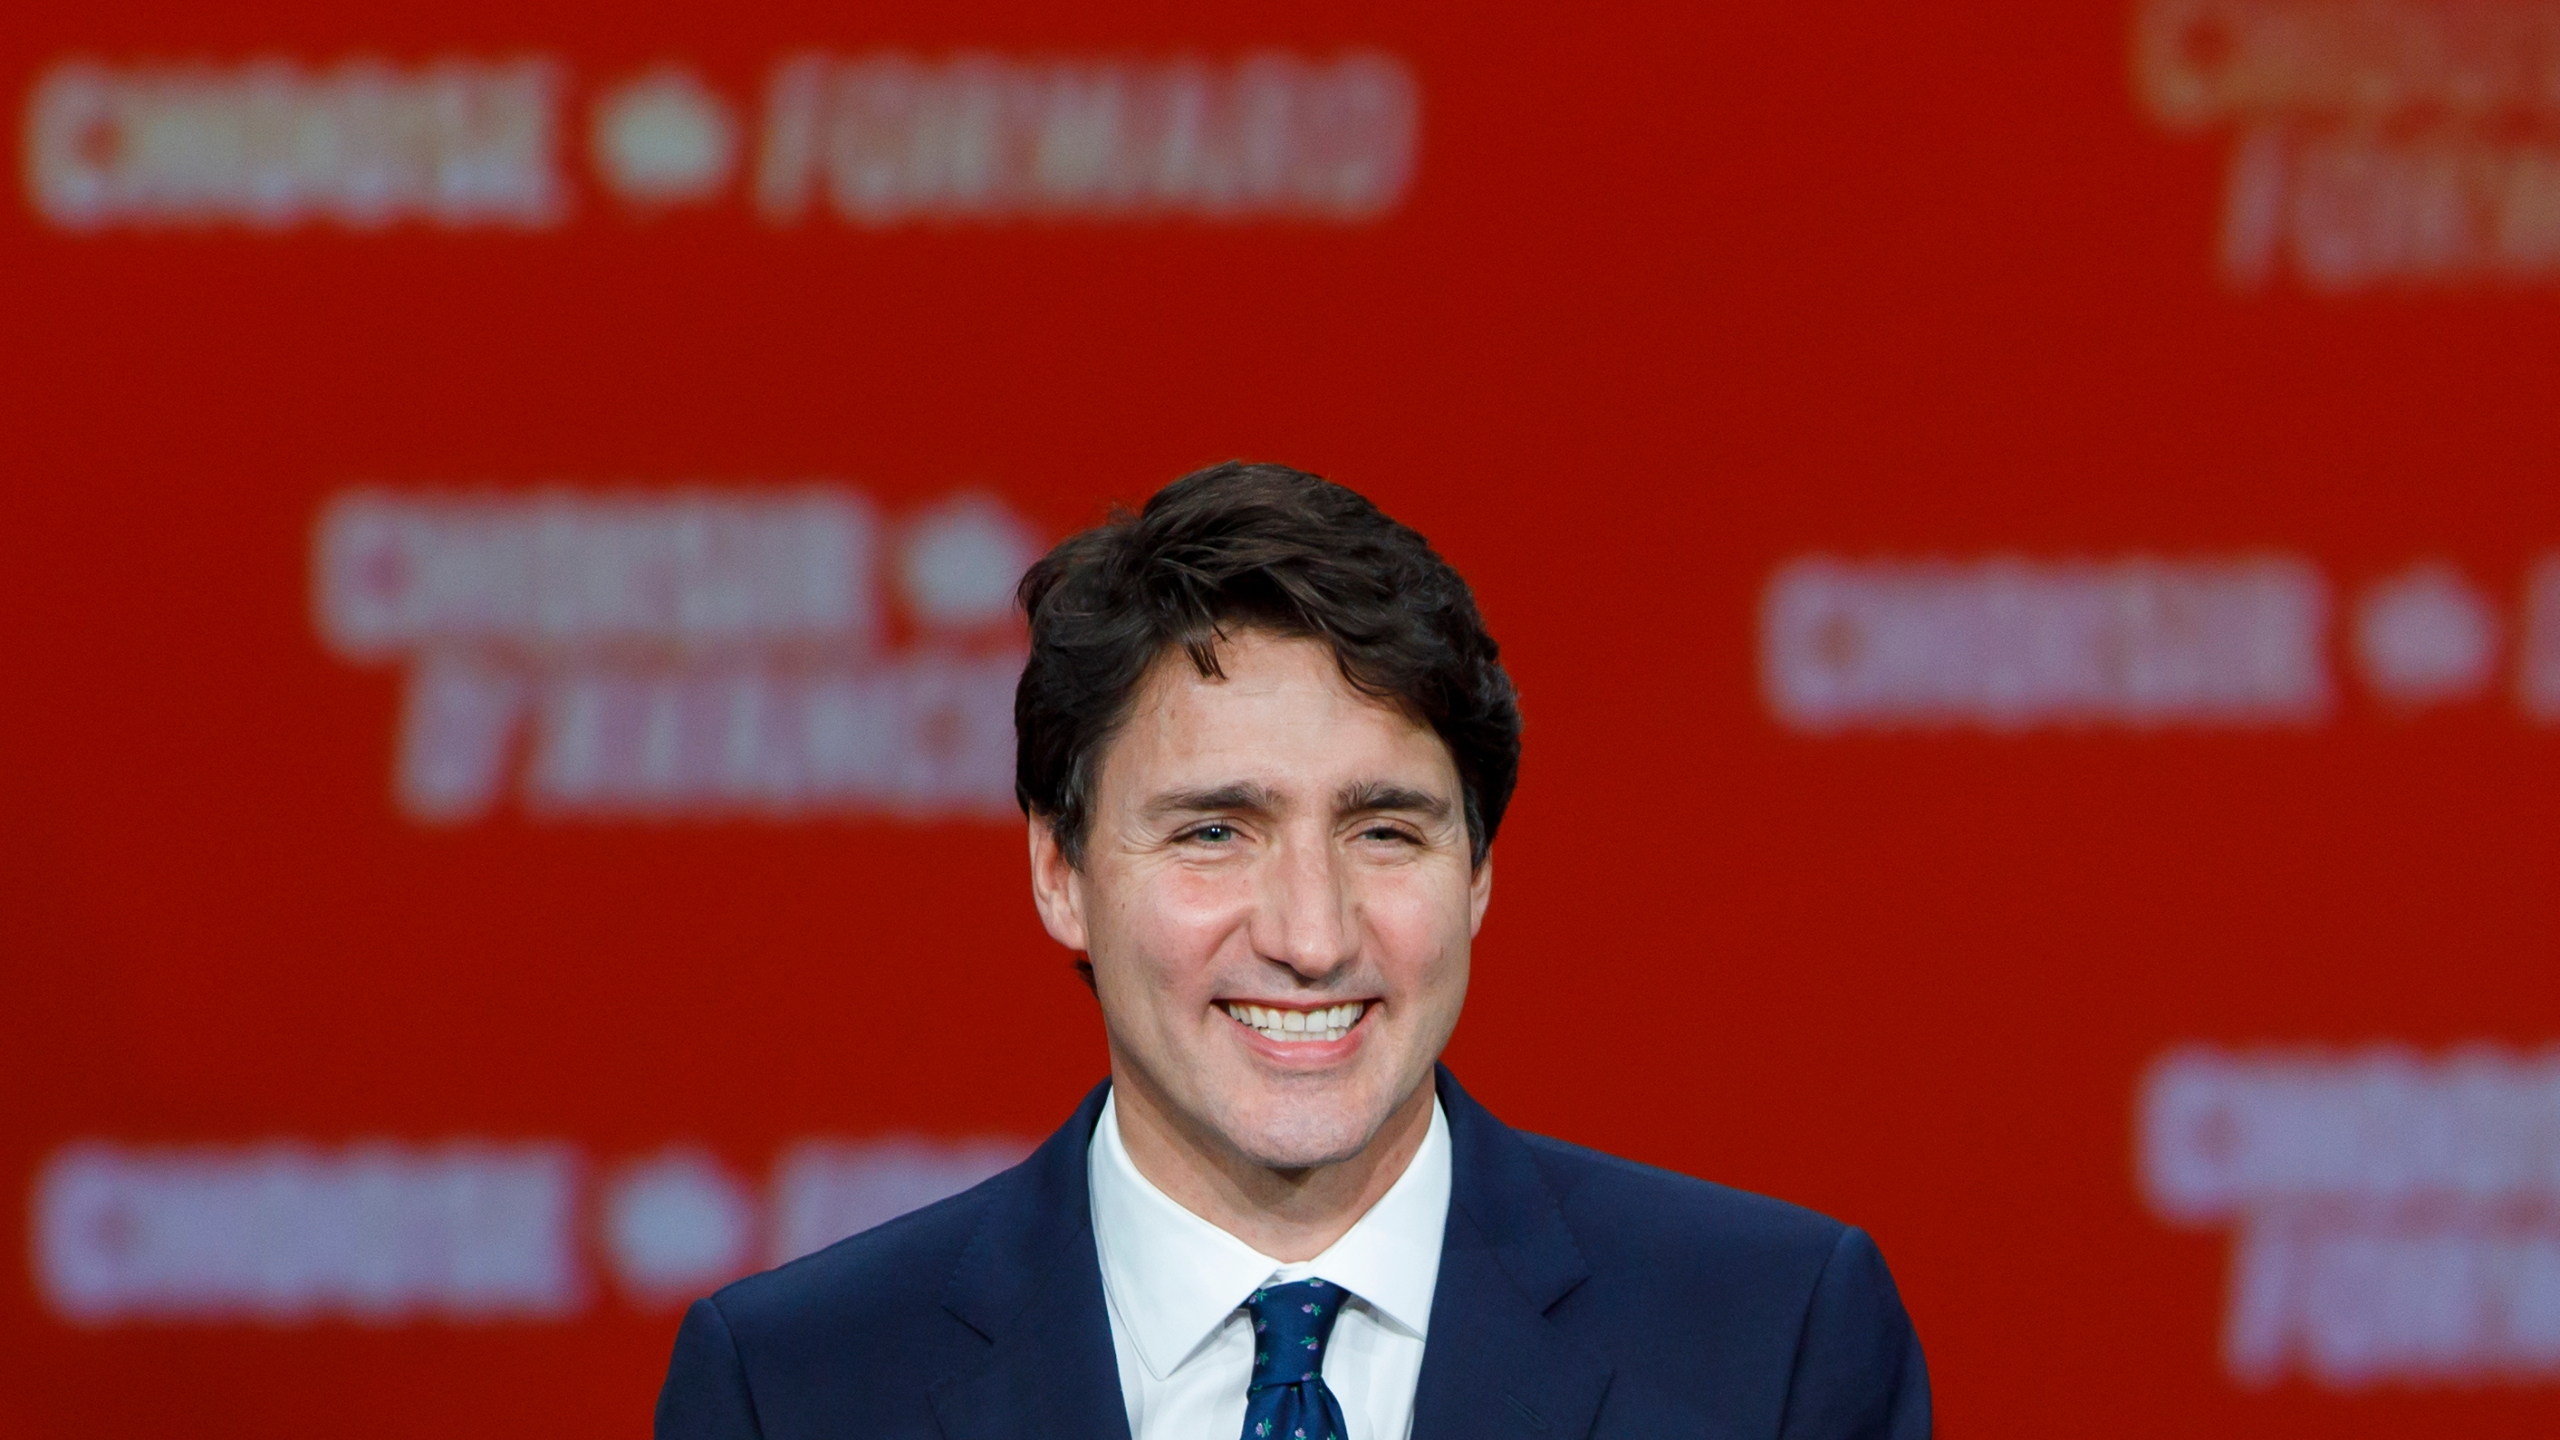 Prime Minister Justin Trudeau smiles as he delivers his victory speech at his election night headquarters on Oct. 21, 2019 in Montreal, Canada. (Credit: Cole Burston/Getty Images)